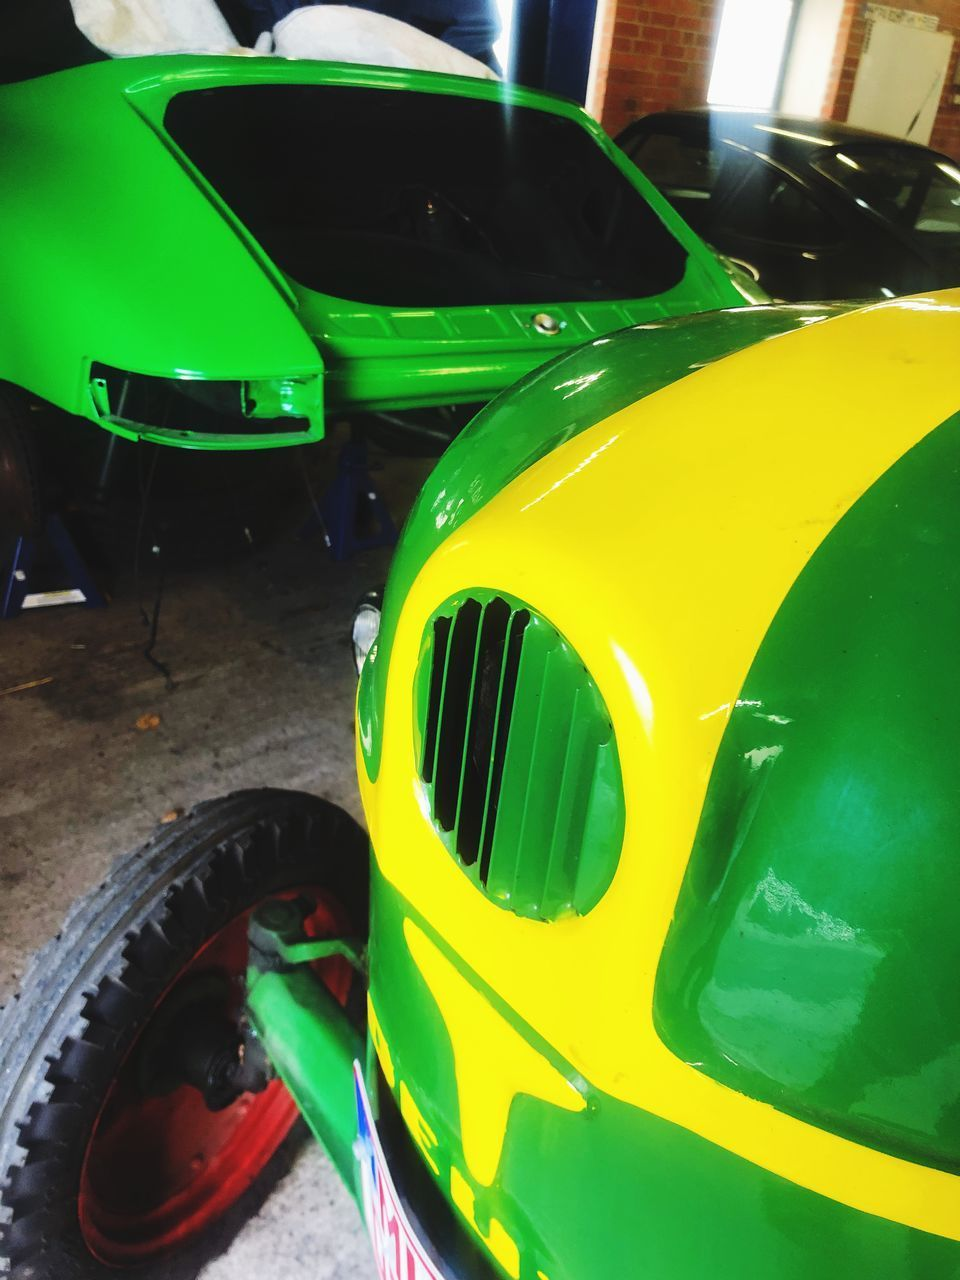 mode of transportation, green color, land vehicle, transportation, car, motor vehicle, yellow, day, no people, stationary, outdoors, multi colored, close-up, high angle view, travel, headlight, shopping, garage, wheel, junkyard